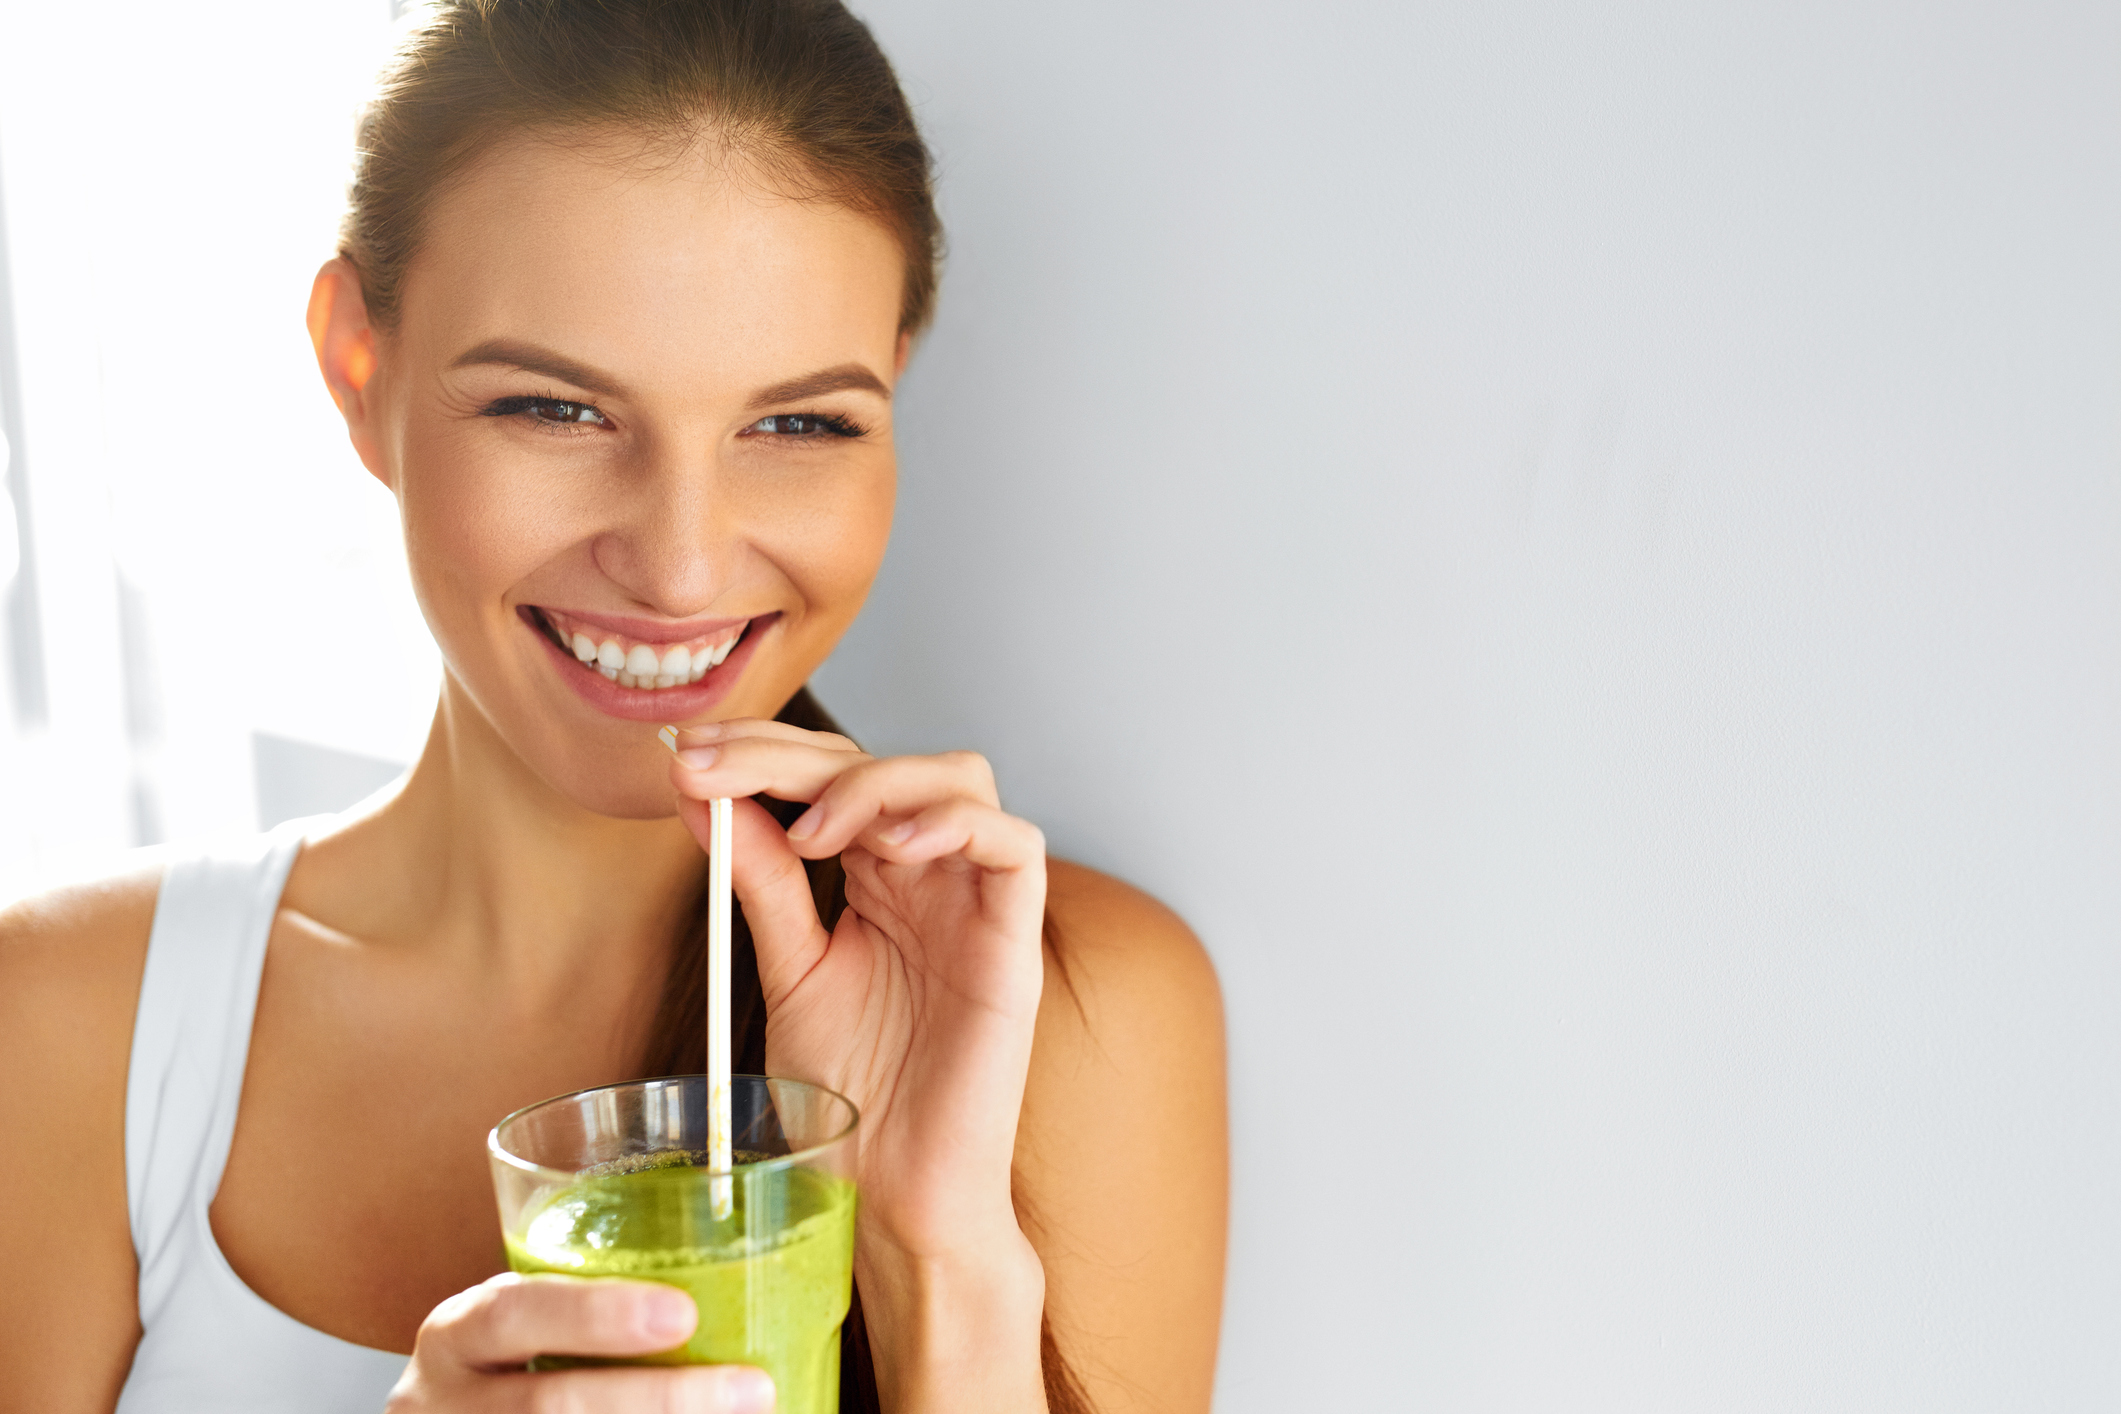 Healthy Food Eating. Woman Drinking Smoothie. Diet. Lifestyle. Nutrition